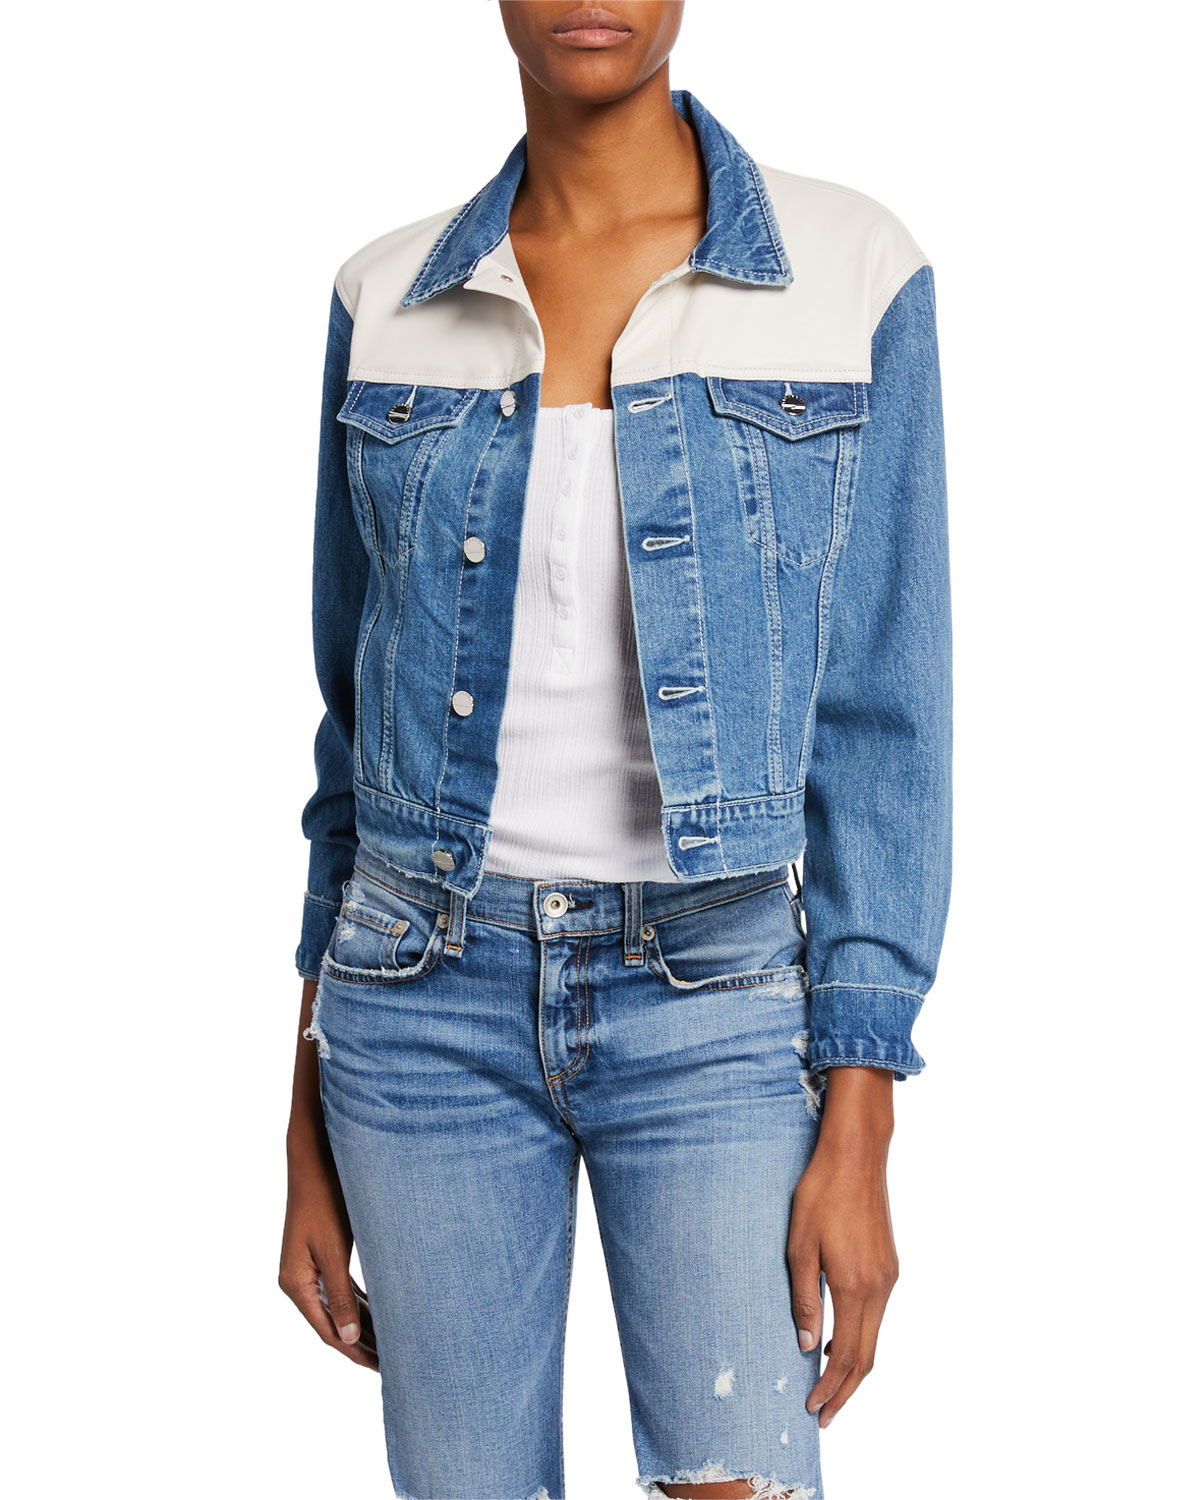 LaMarque Karly Cropped Denim Jacket w/ Leather | Neiman Marcus